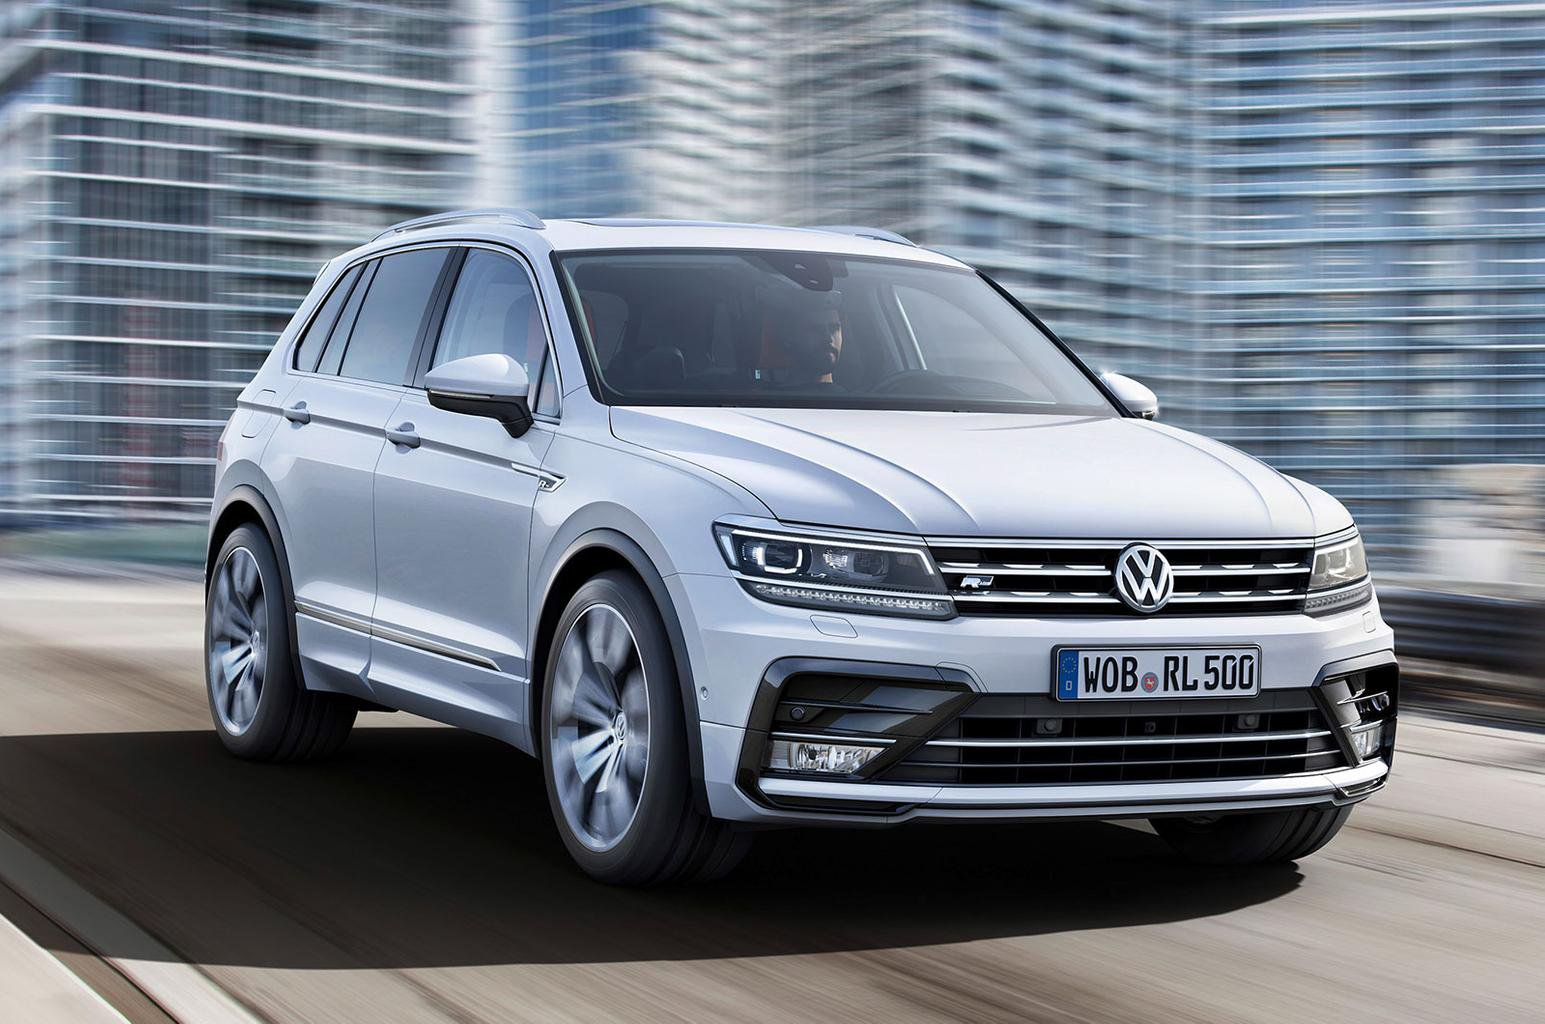 New Volkswagen Tiguan revealed at Frankfurt motor show